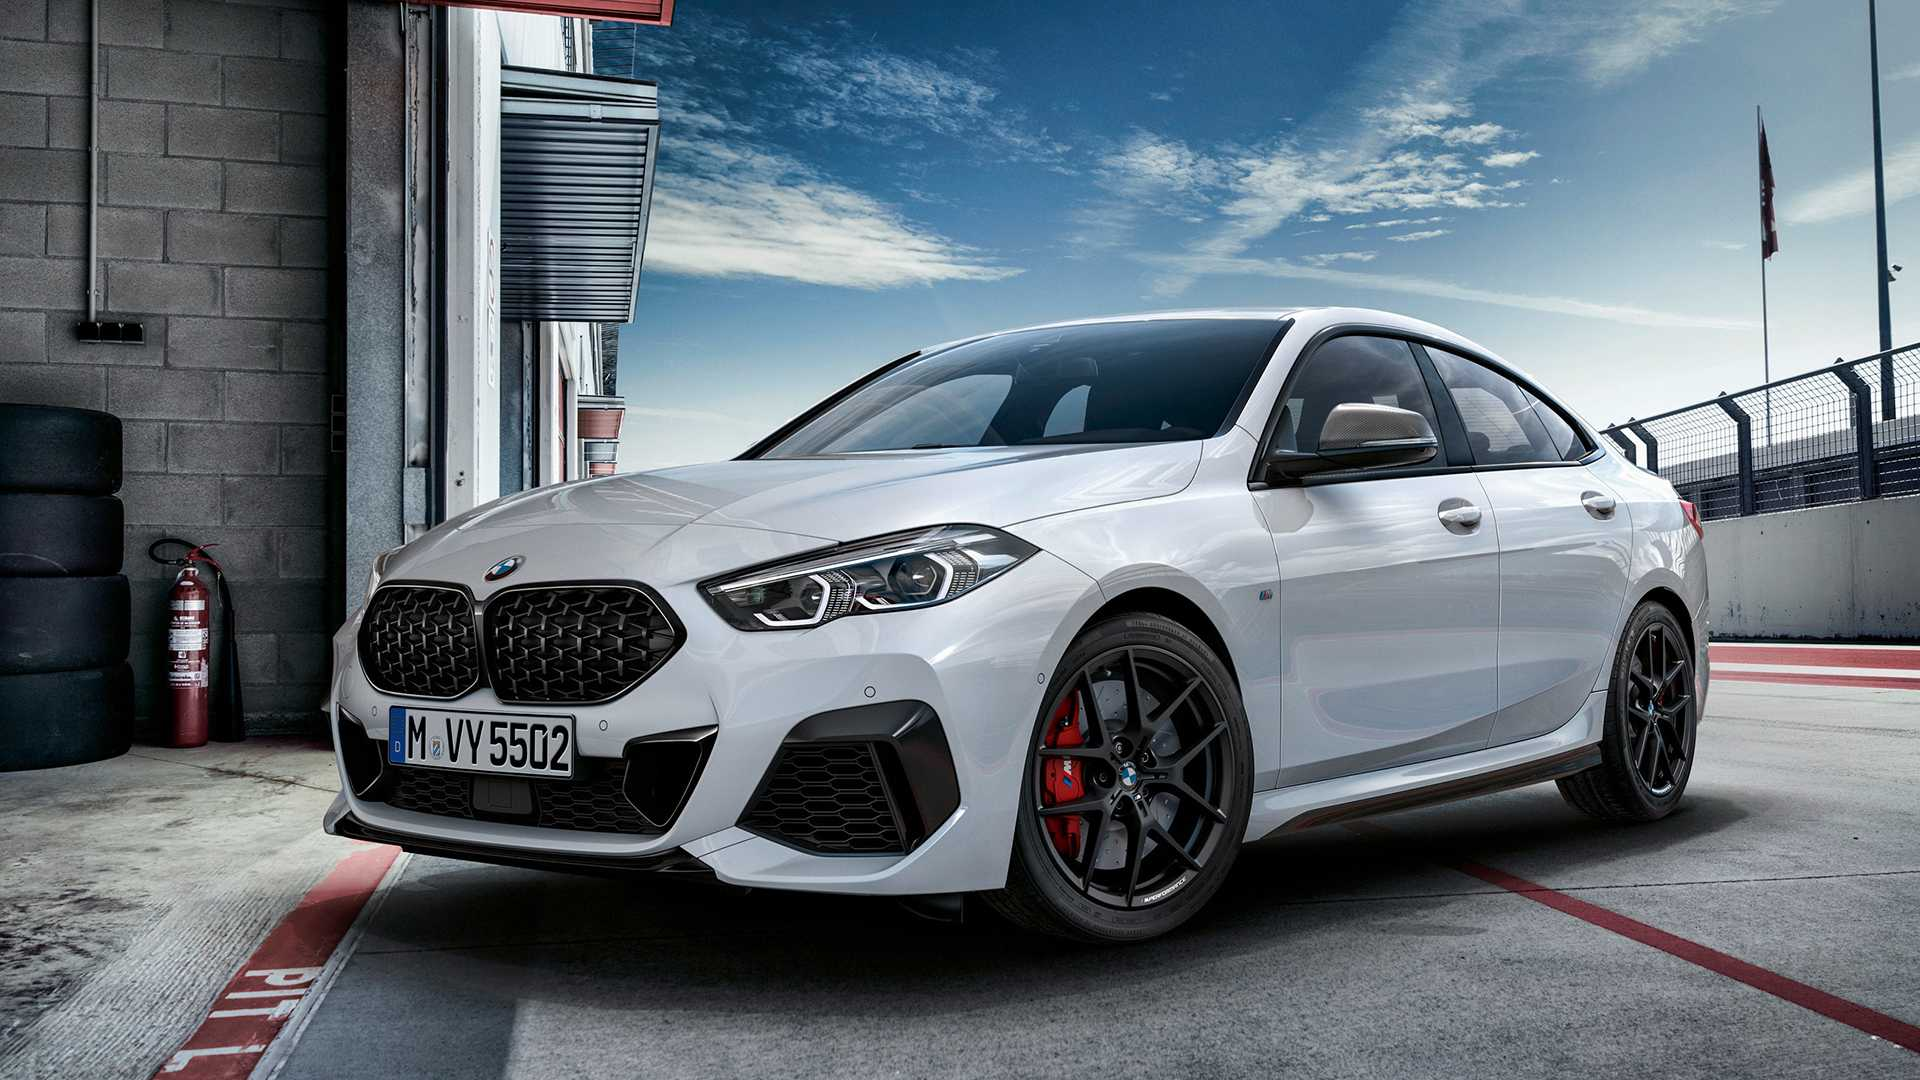 2020 BMW 2 Series Gran Coupe Levels Up With M Performance Parts